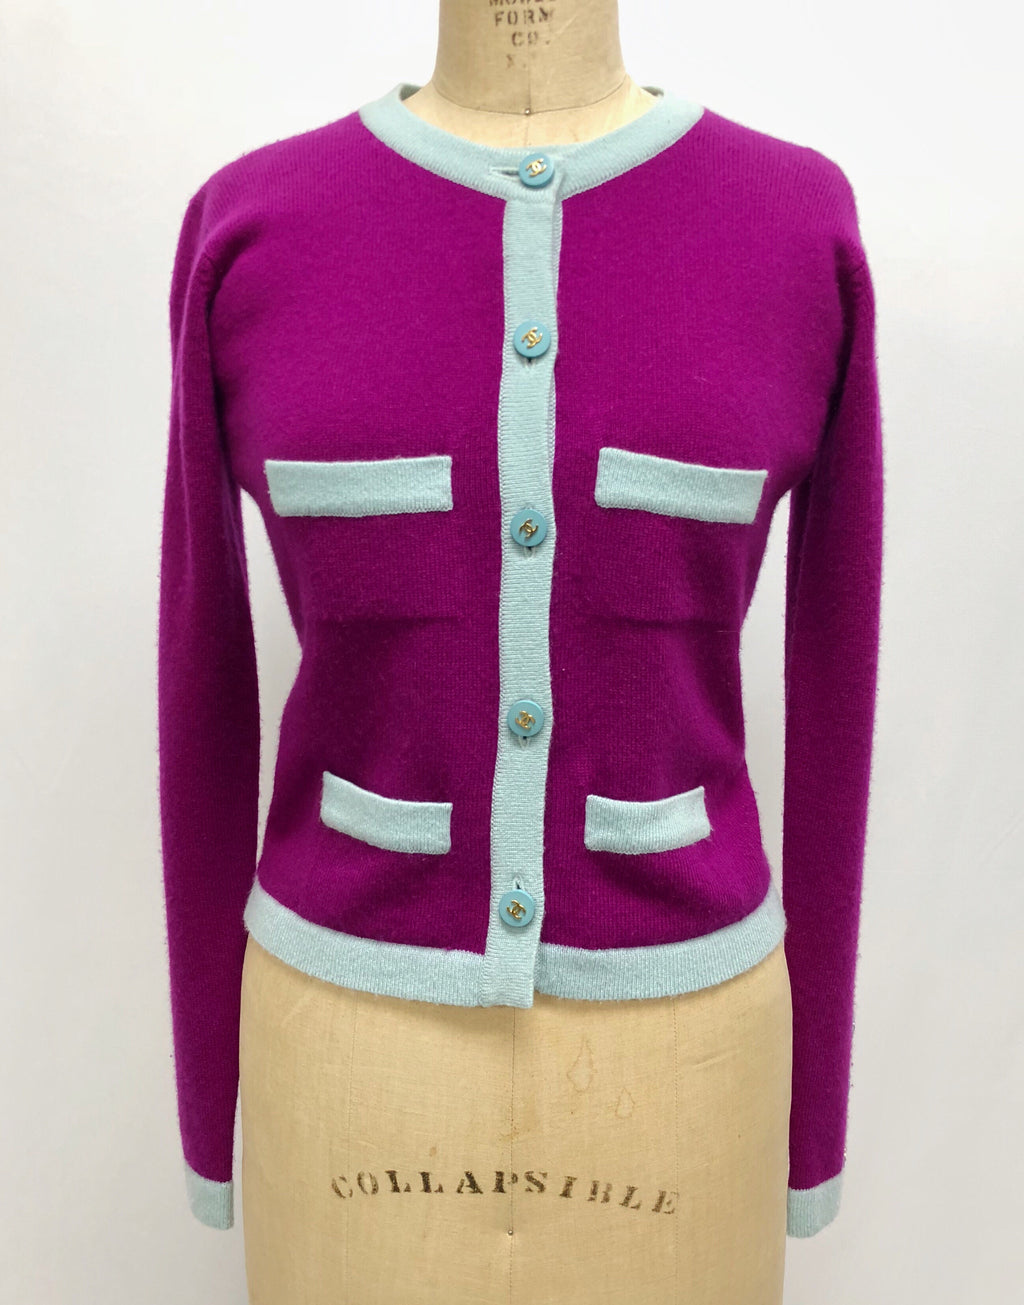 Chanel purple and blue cashmere sweater set